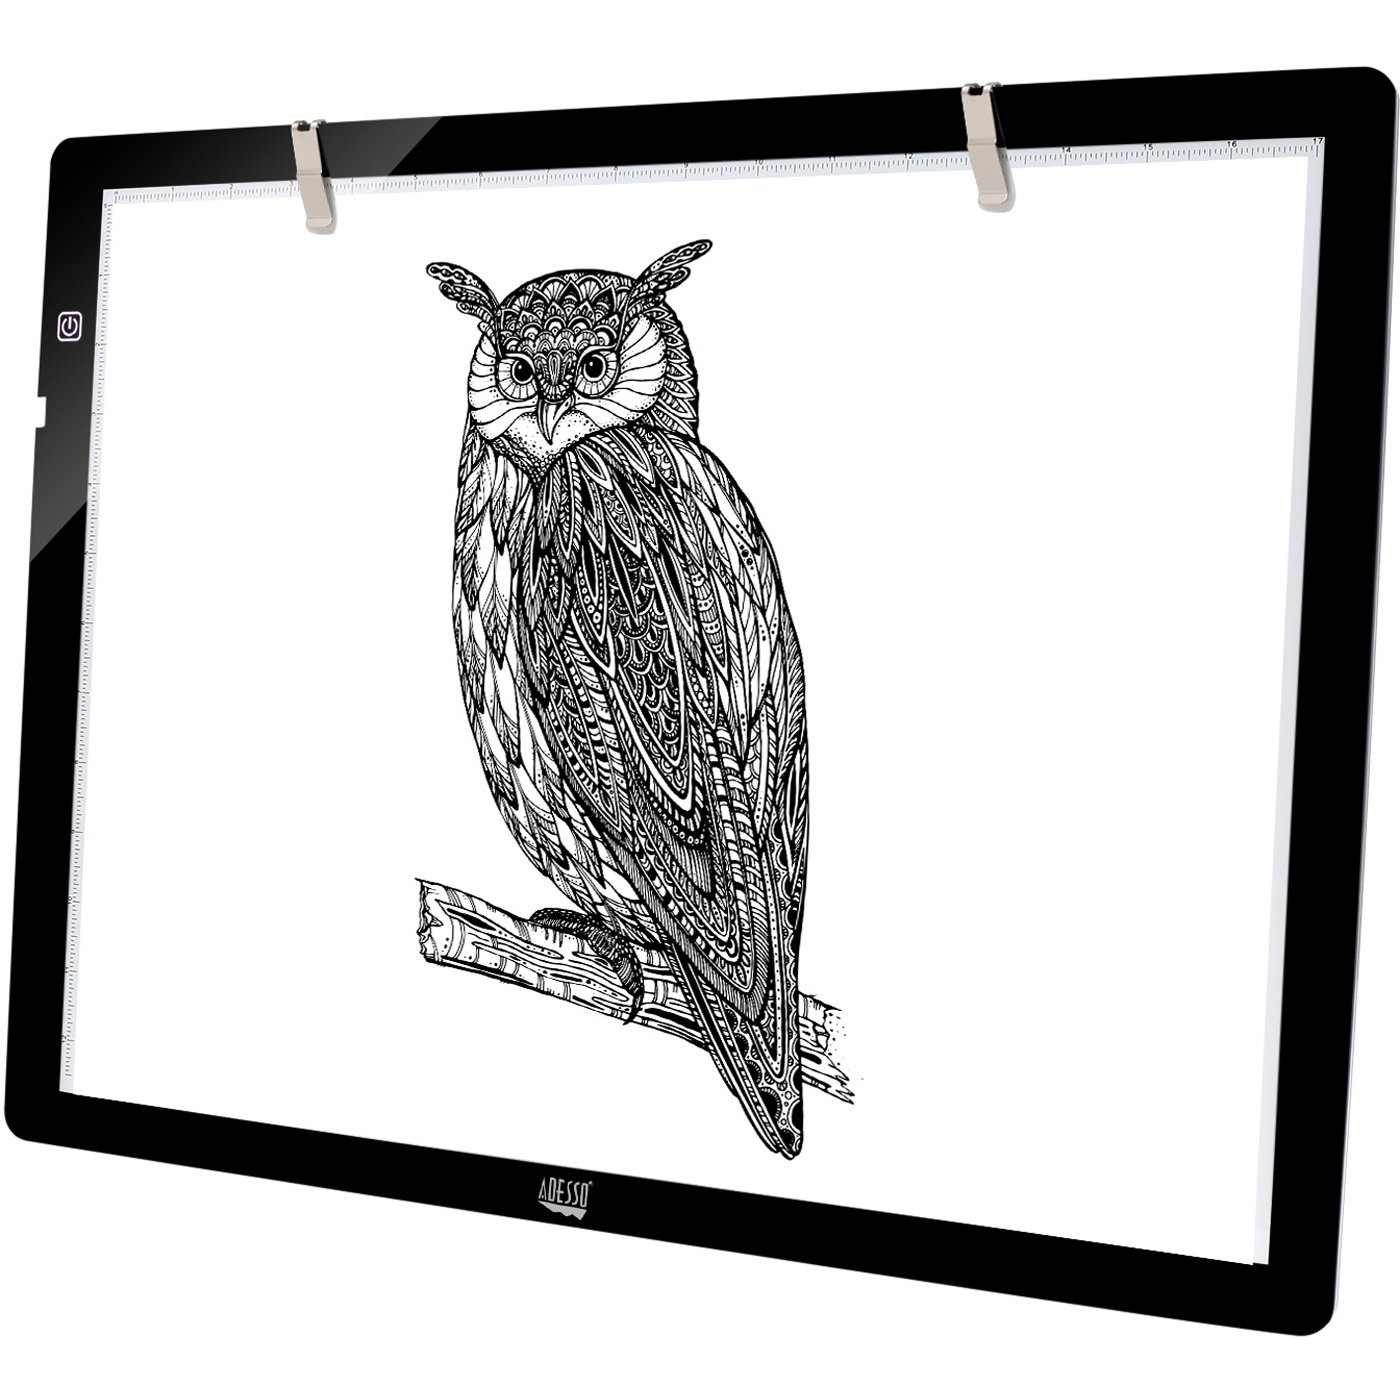 Adesso CyberPad P2 12'' x 7'' LED Artcraft Tracing Light Pad/Box Artists Drawing Sketching X-ray Viewing Black by Adesso